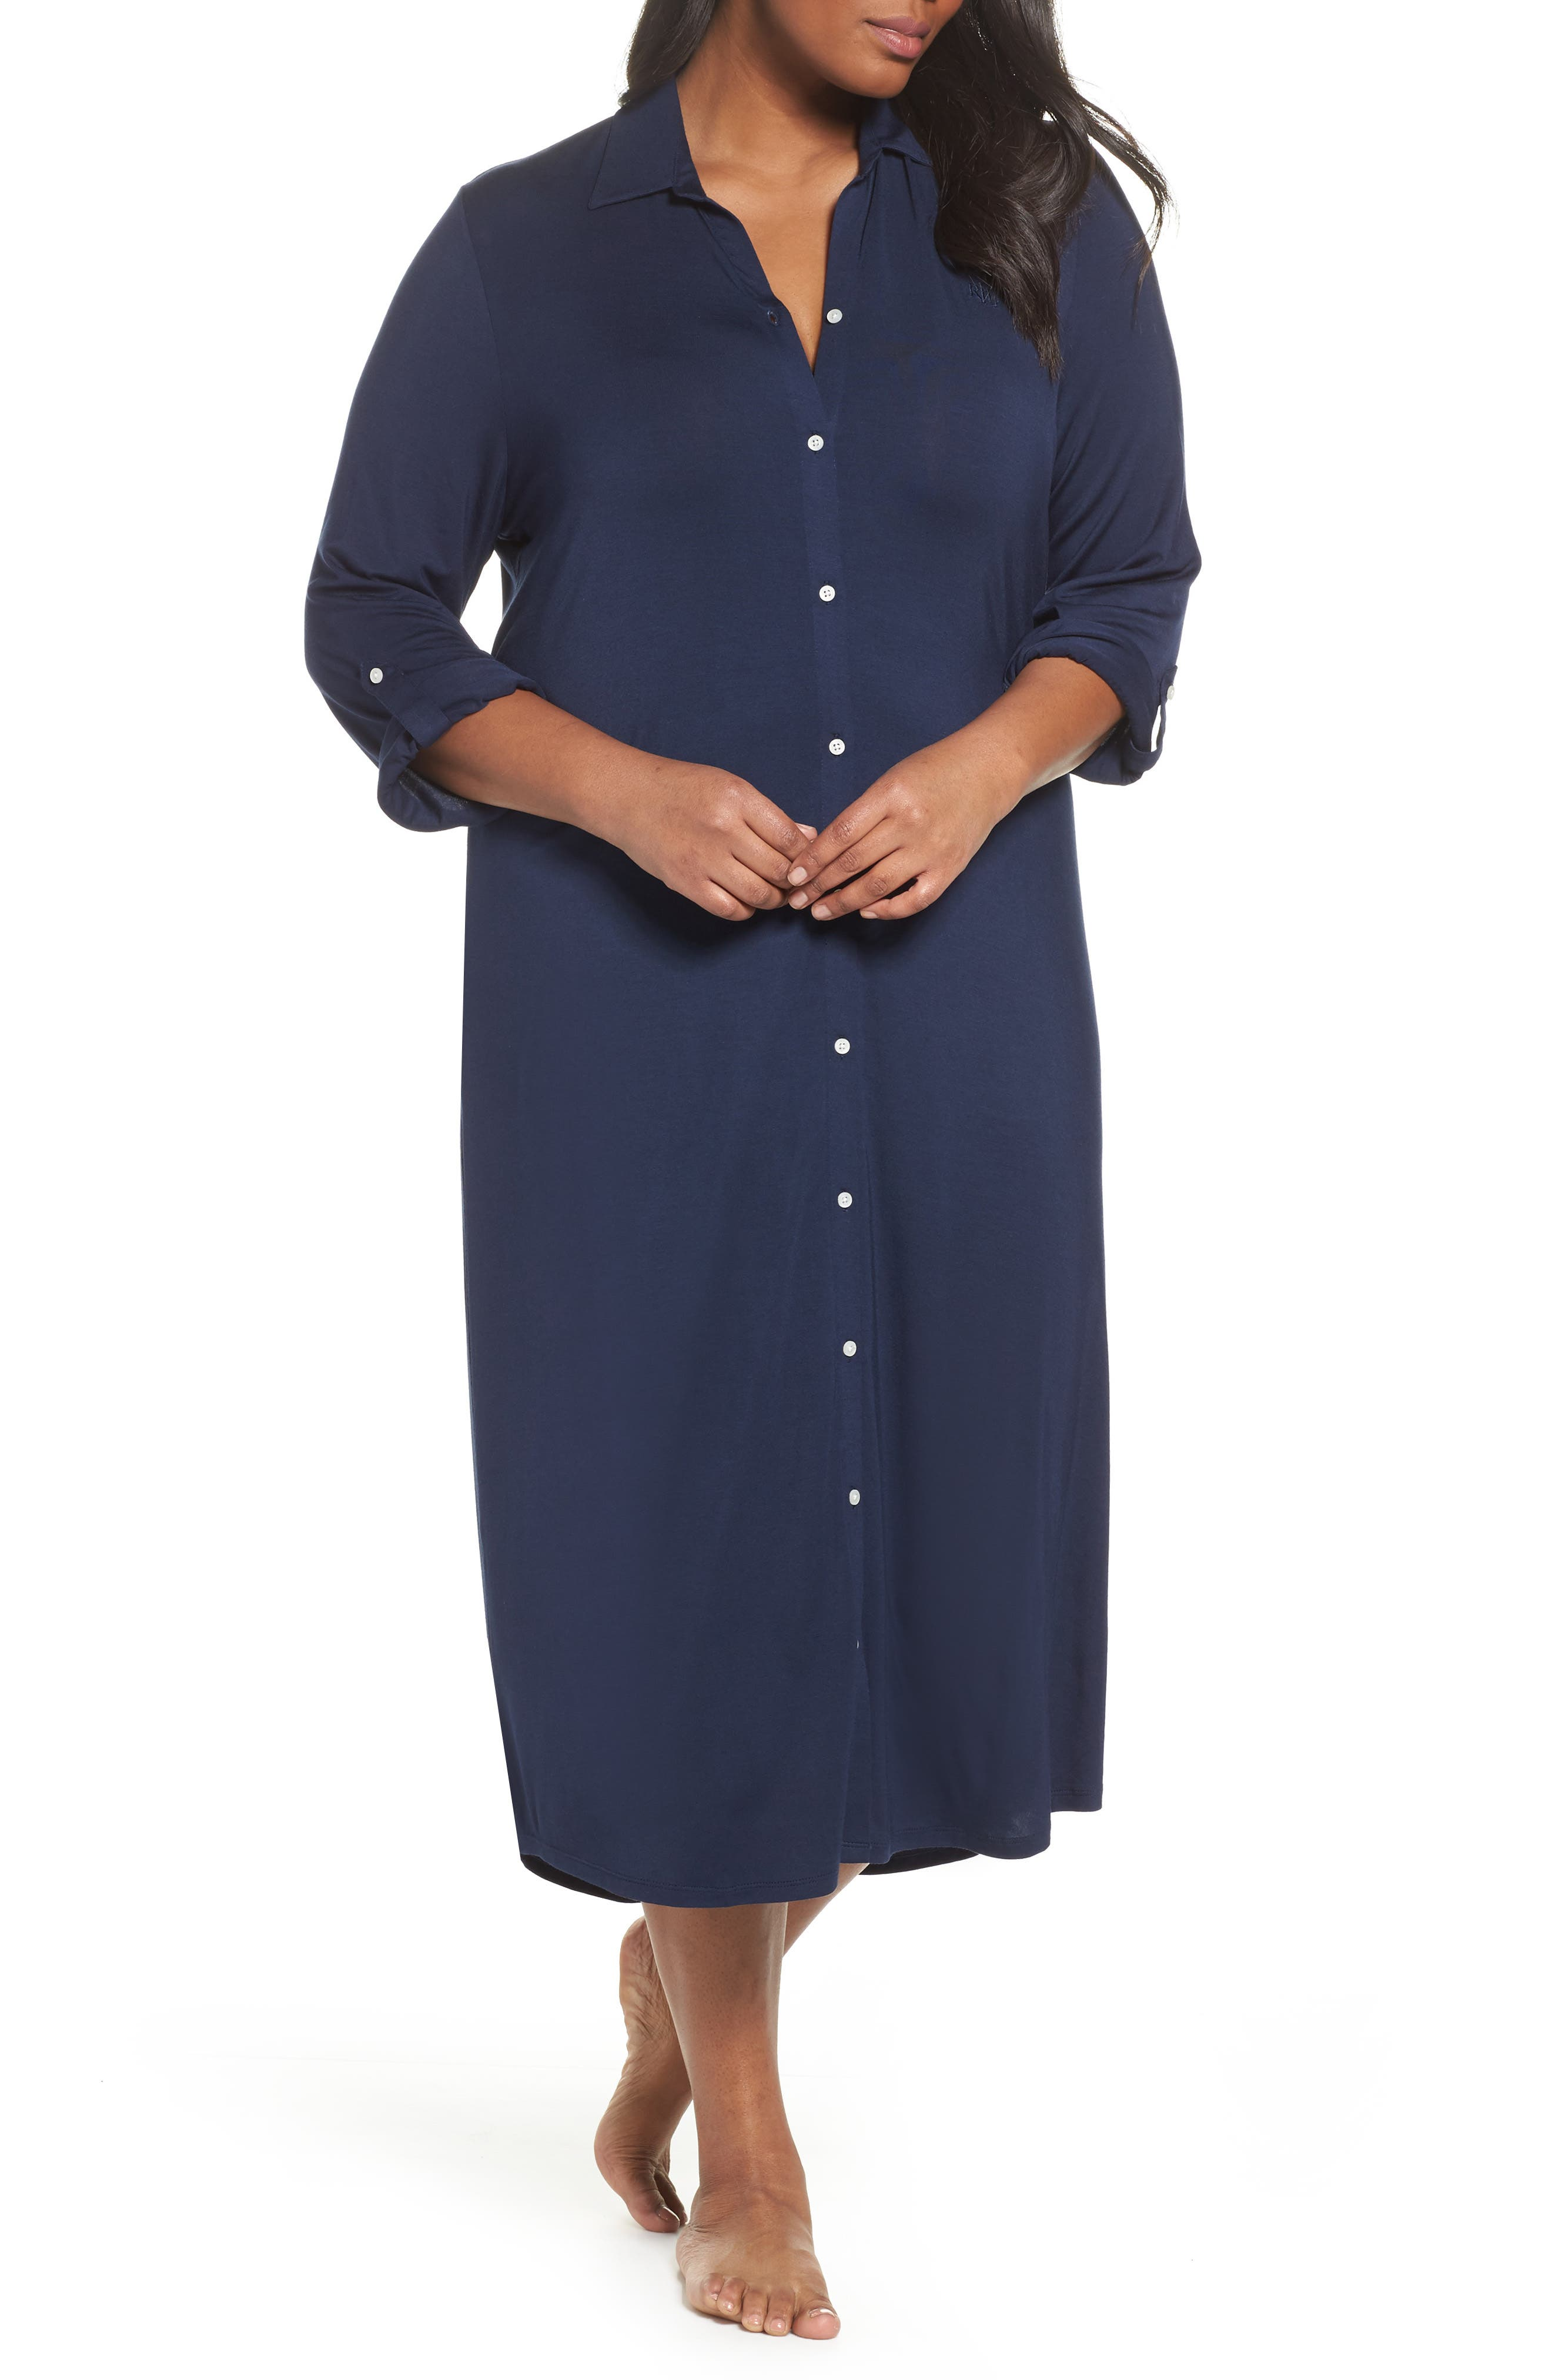 LAUREN RALPH LAUREN, Long Nightshirt, Main thumbnail 1, color, SPRING NAVY